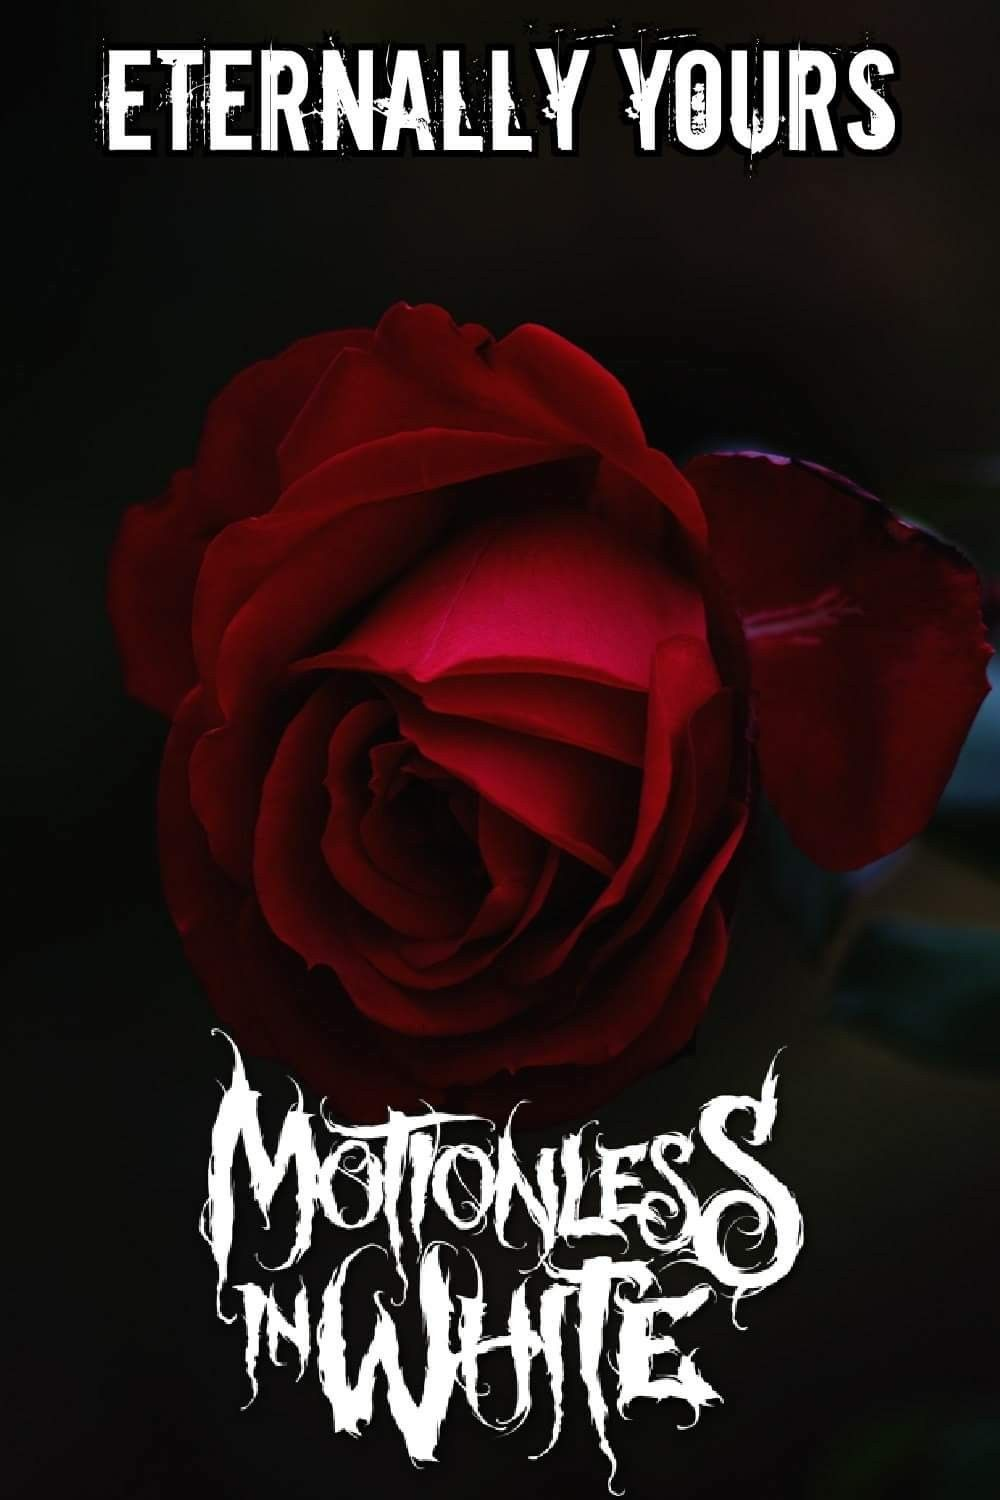 Pin by maggie enz on miw motionless in white white - Motionless in white wallpaper ...